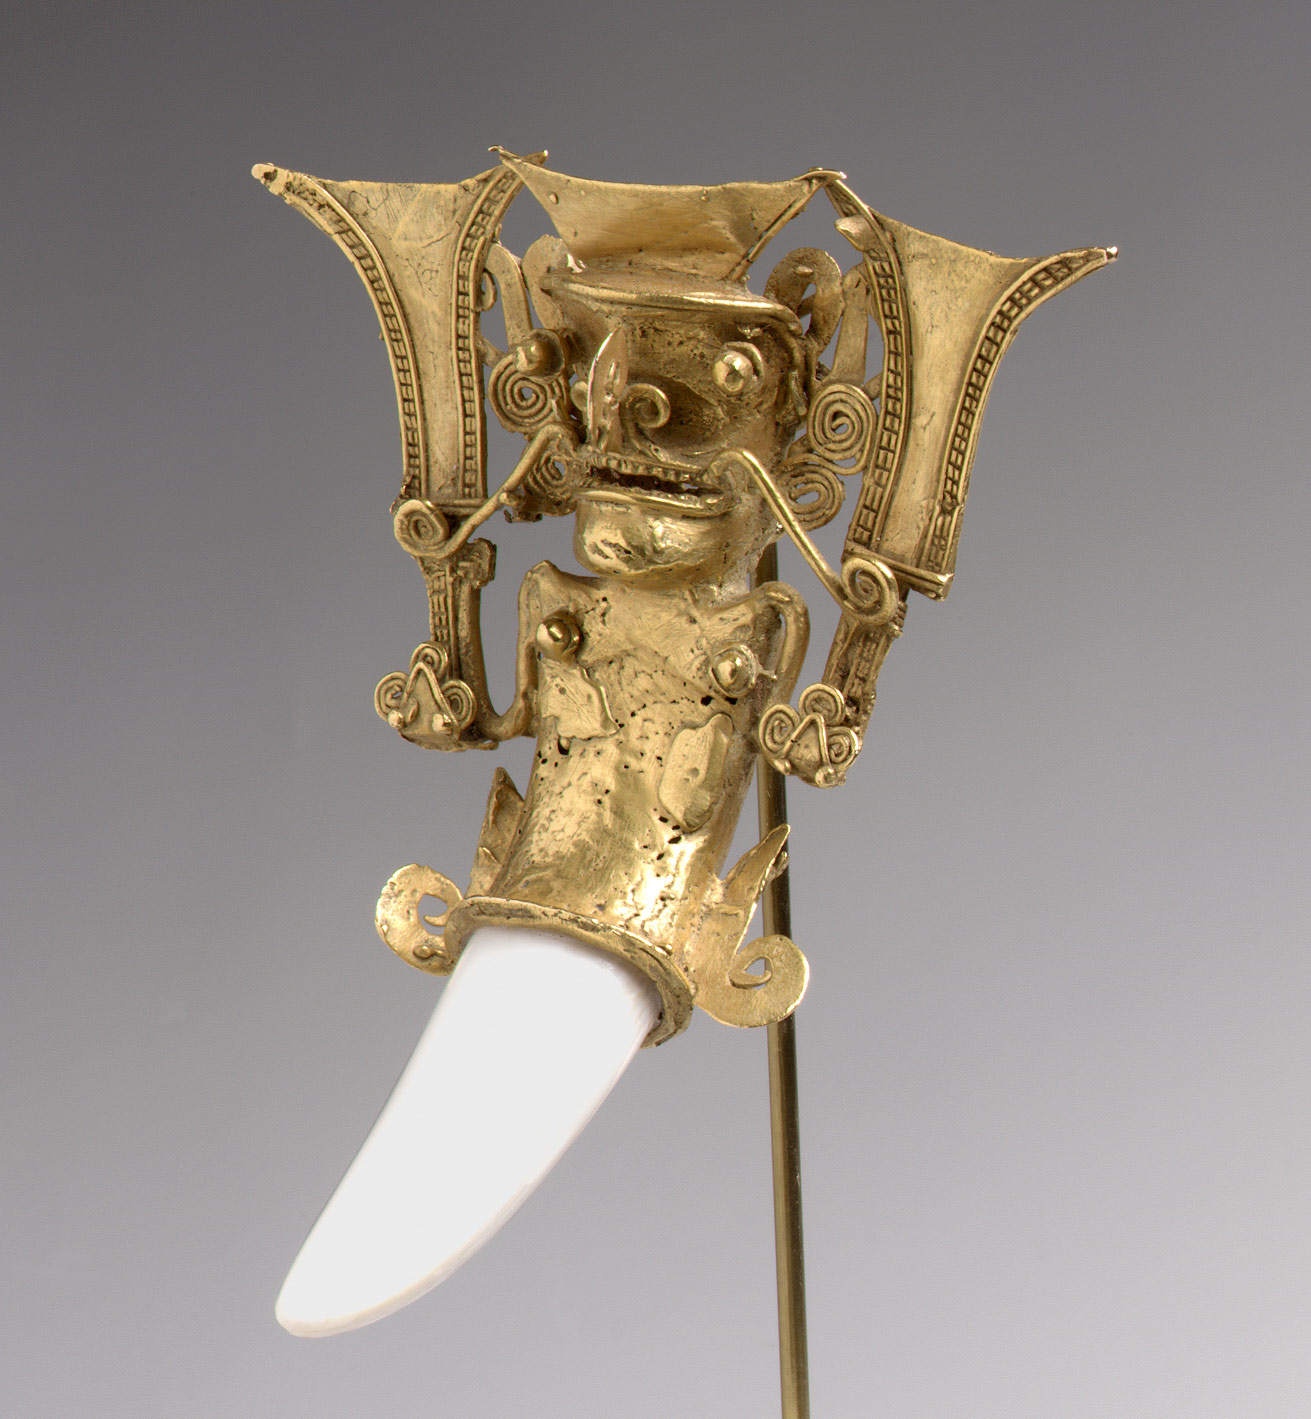 Bat-Nosed Figure Pendant